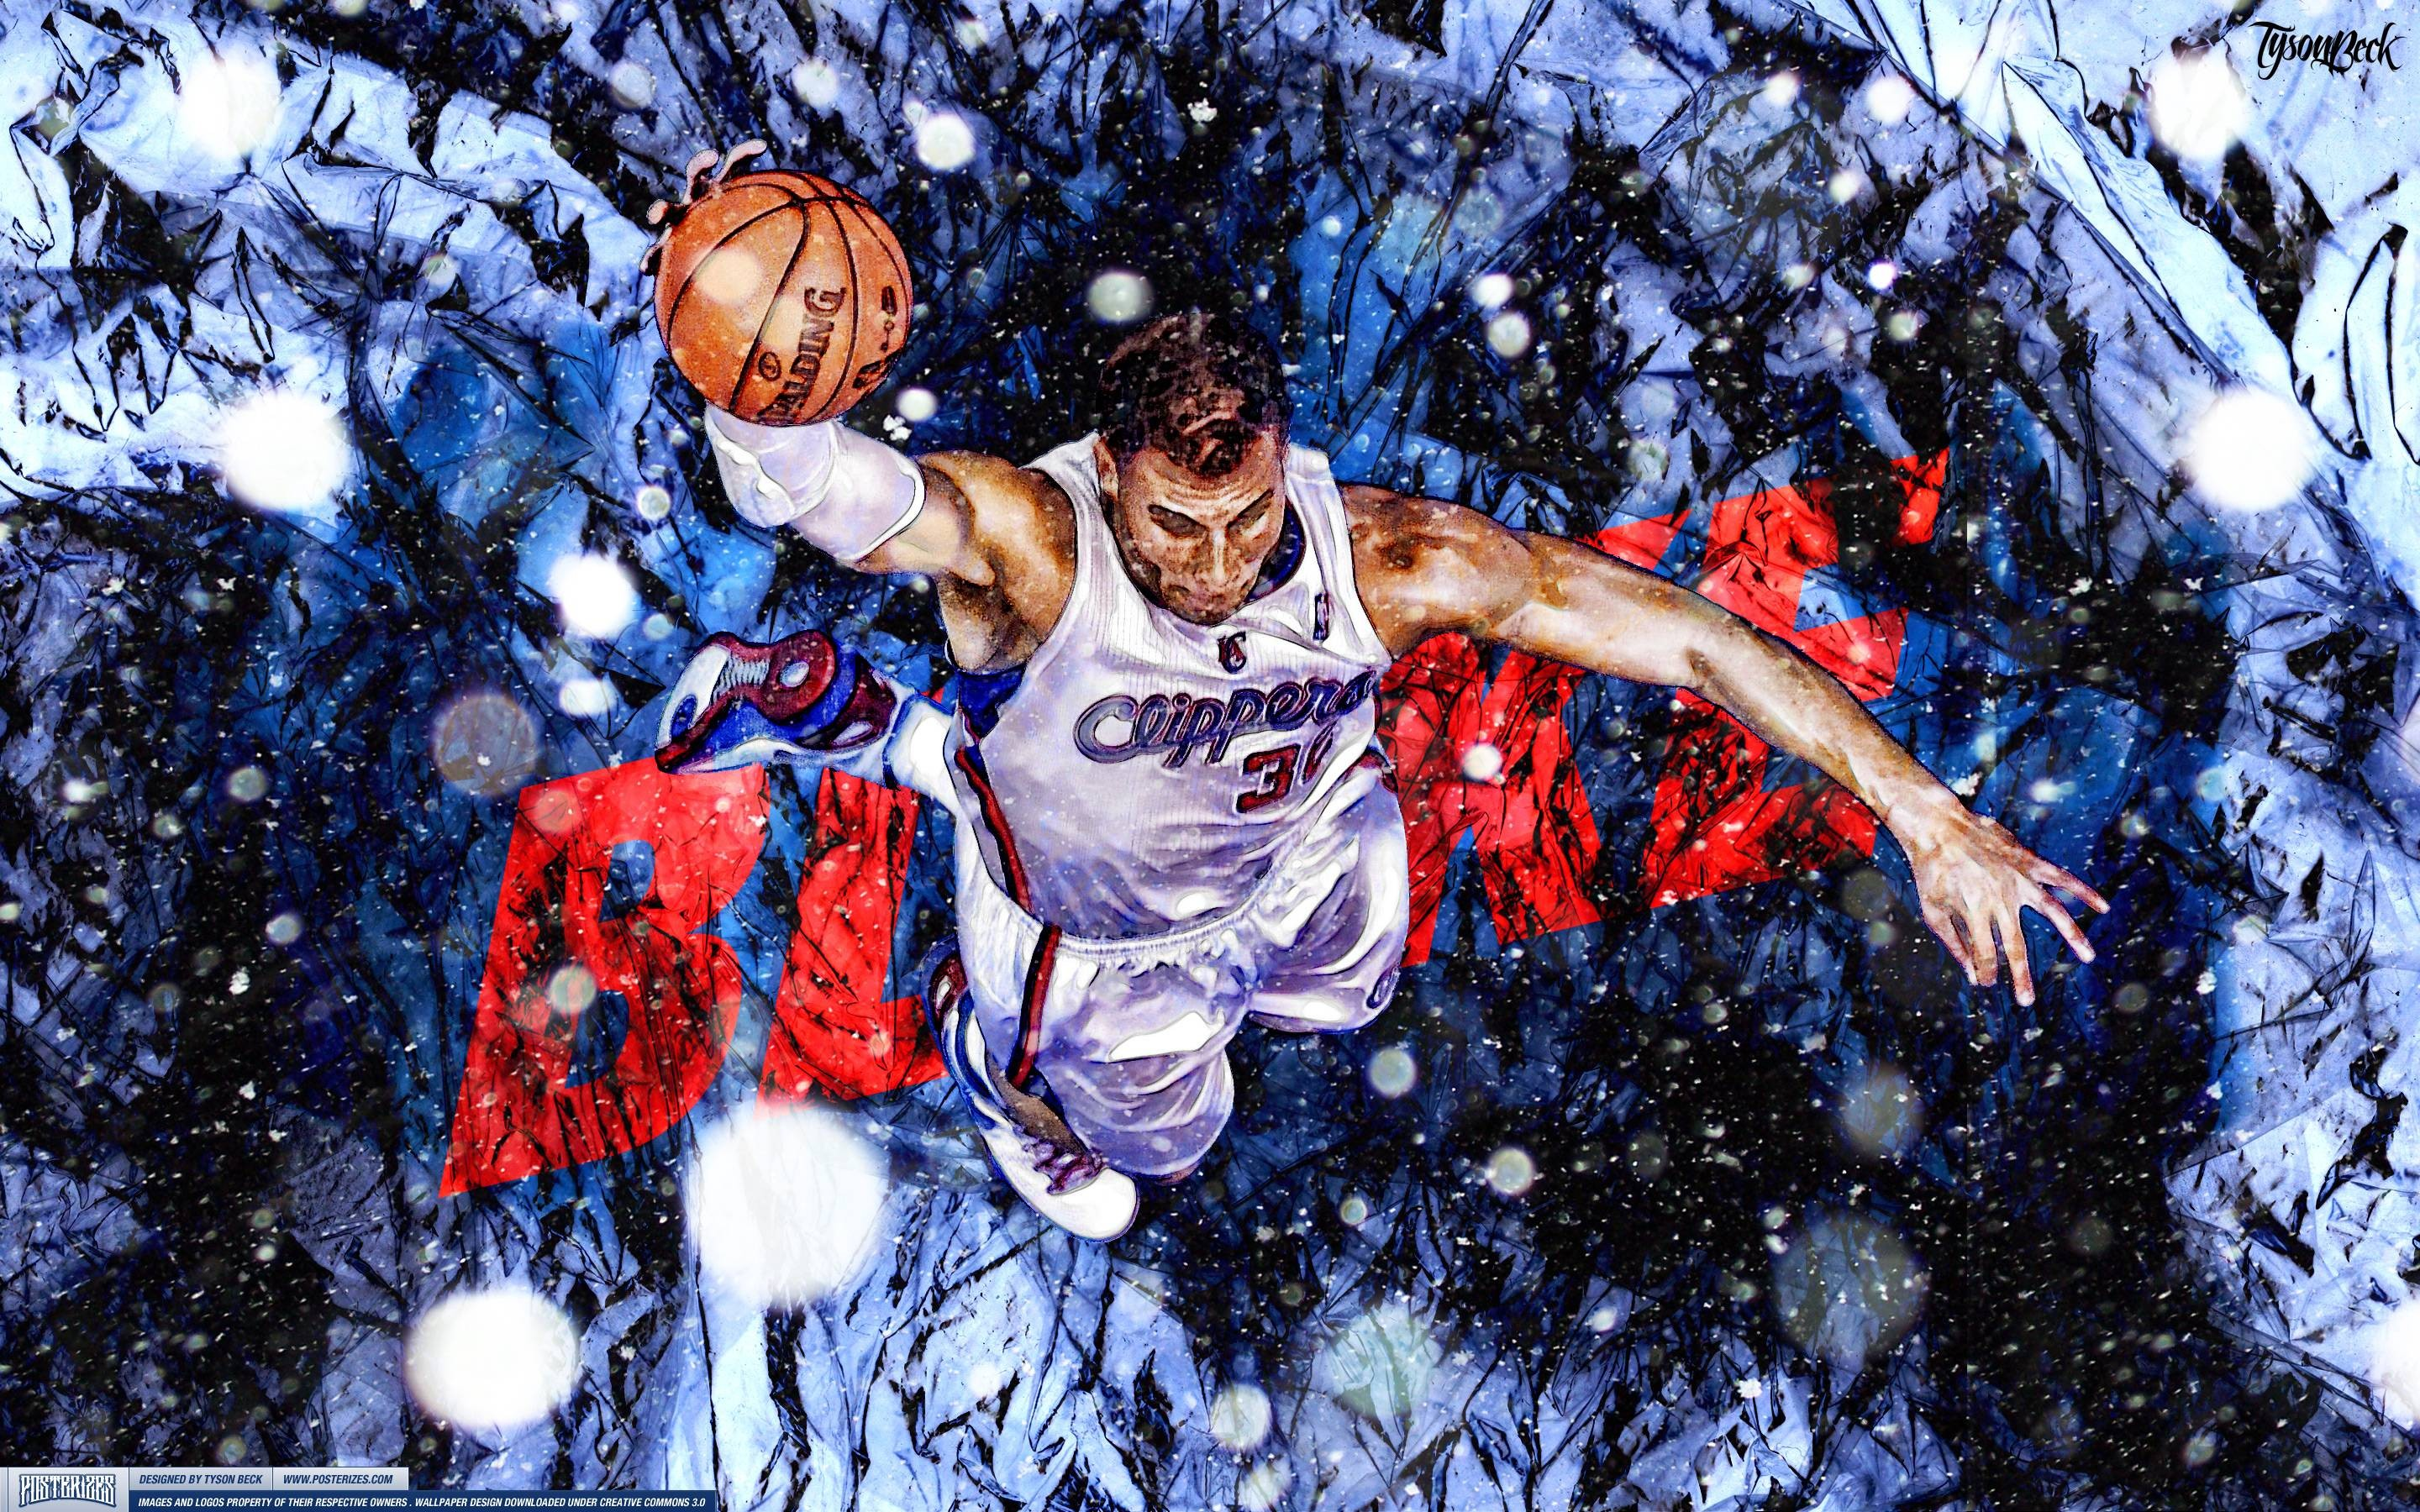 Cool Nba Wallpapers For Iphone 65 Images: 50+ Nba Wallpapers ·① Download Free HD Backgrounds For